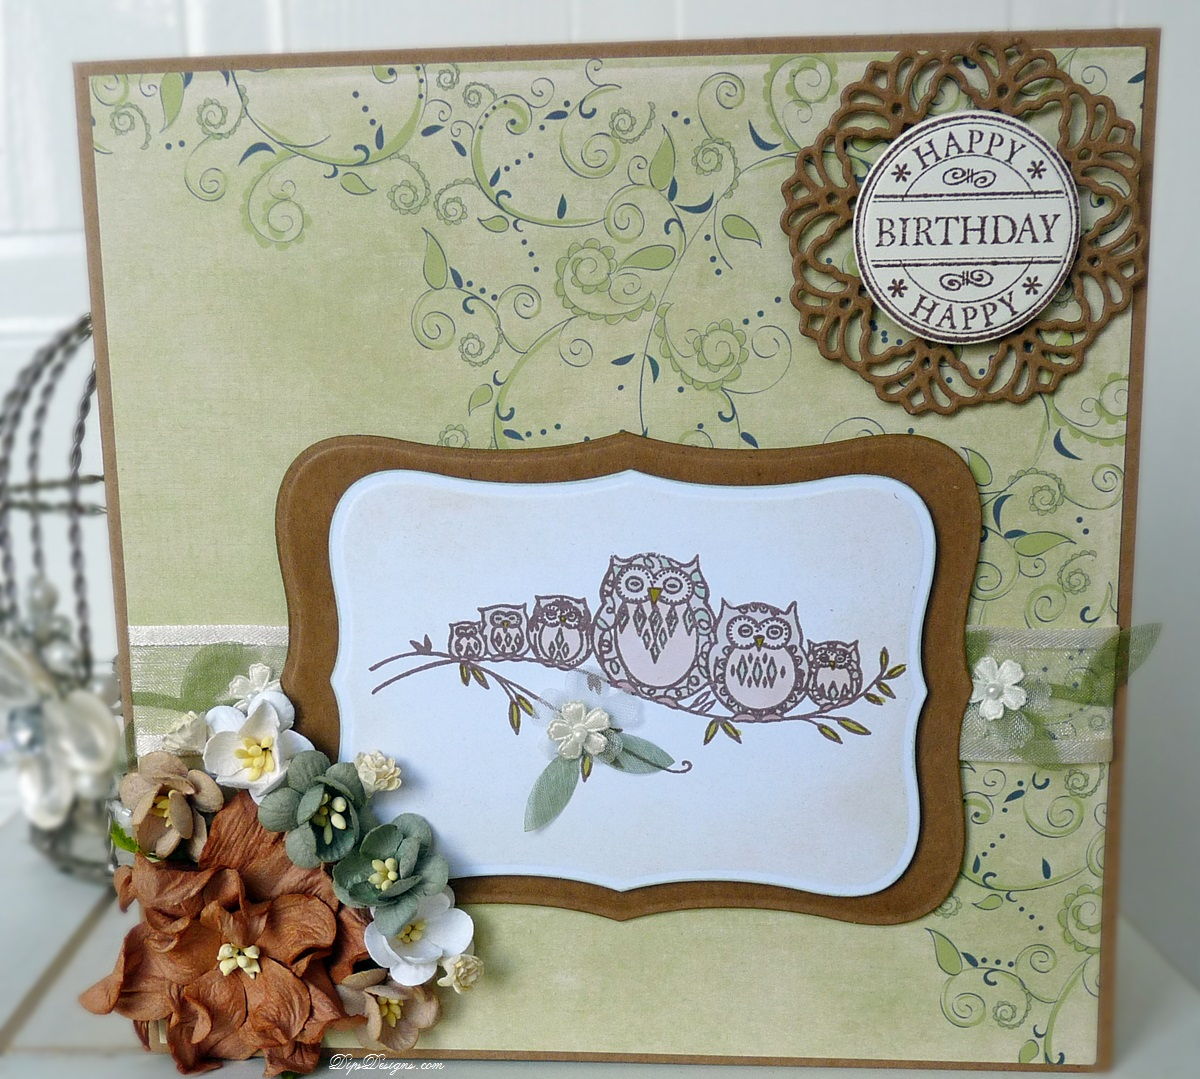 Swirly Whirlies Owl Family & First Edition Spring Feast Card